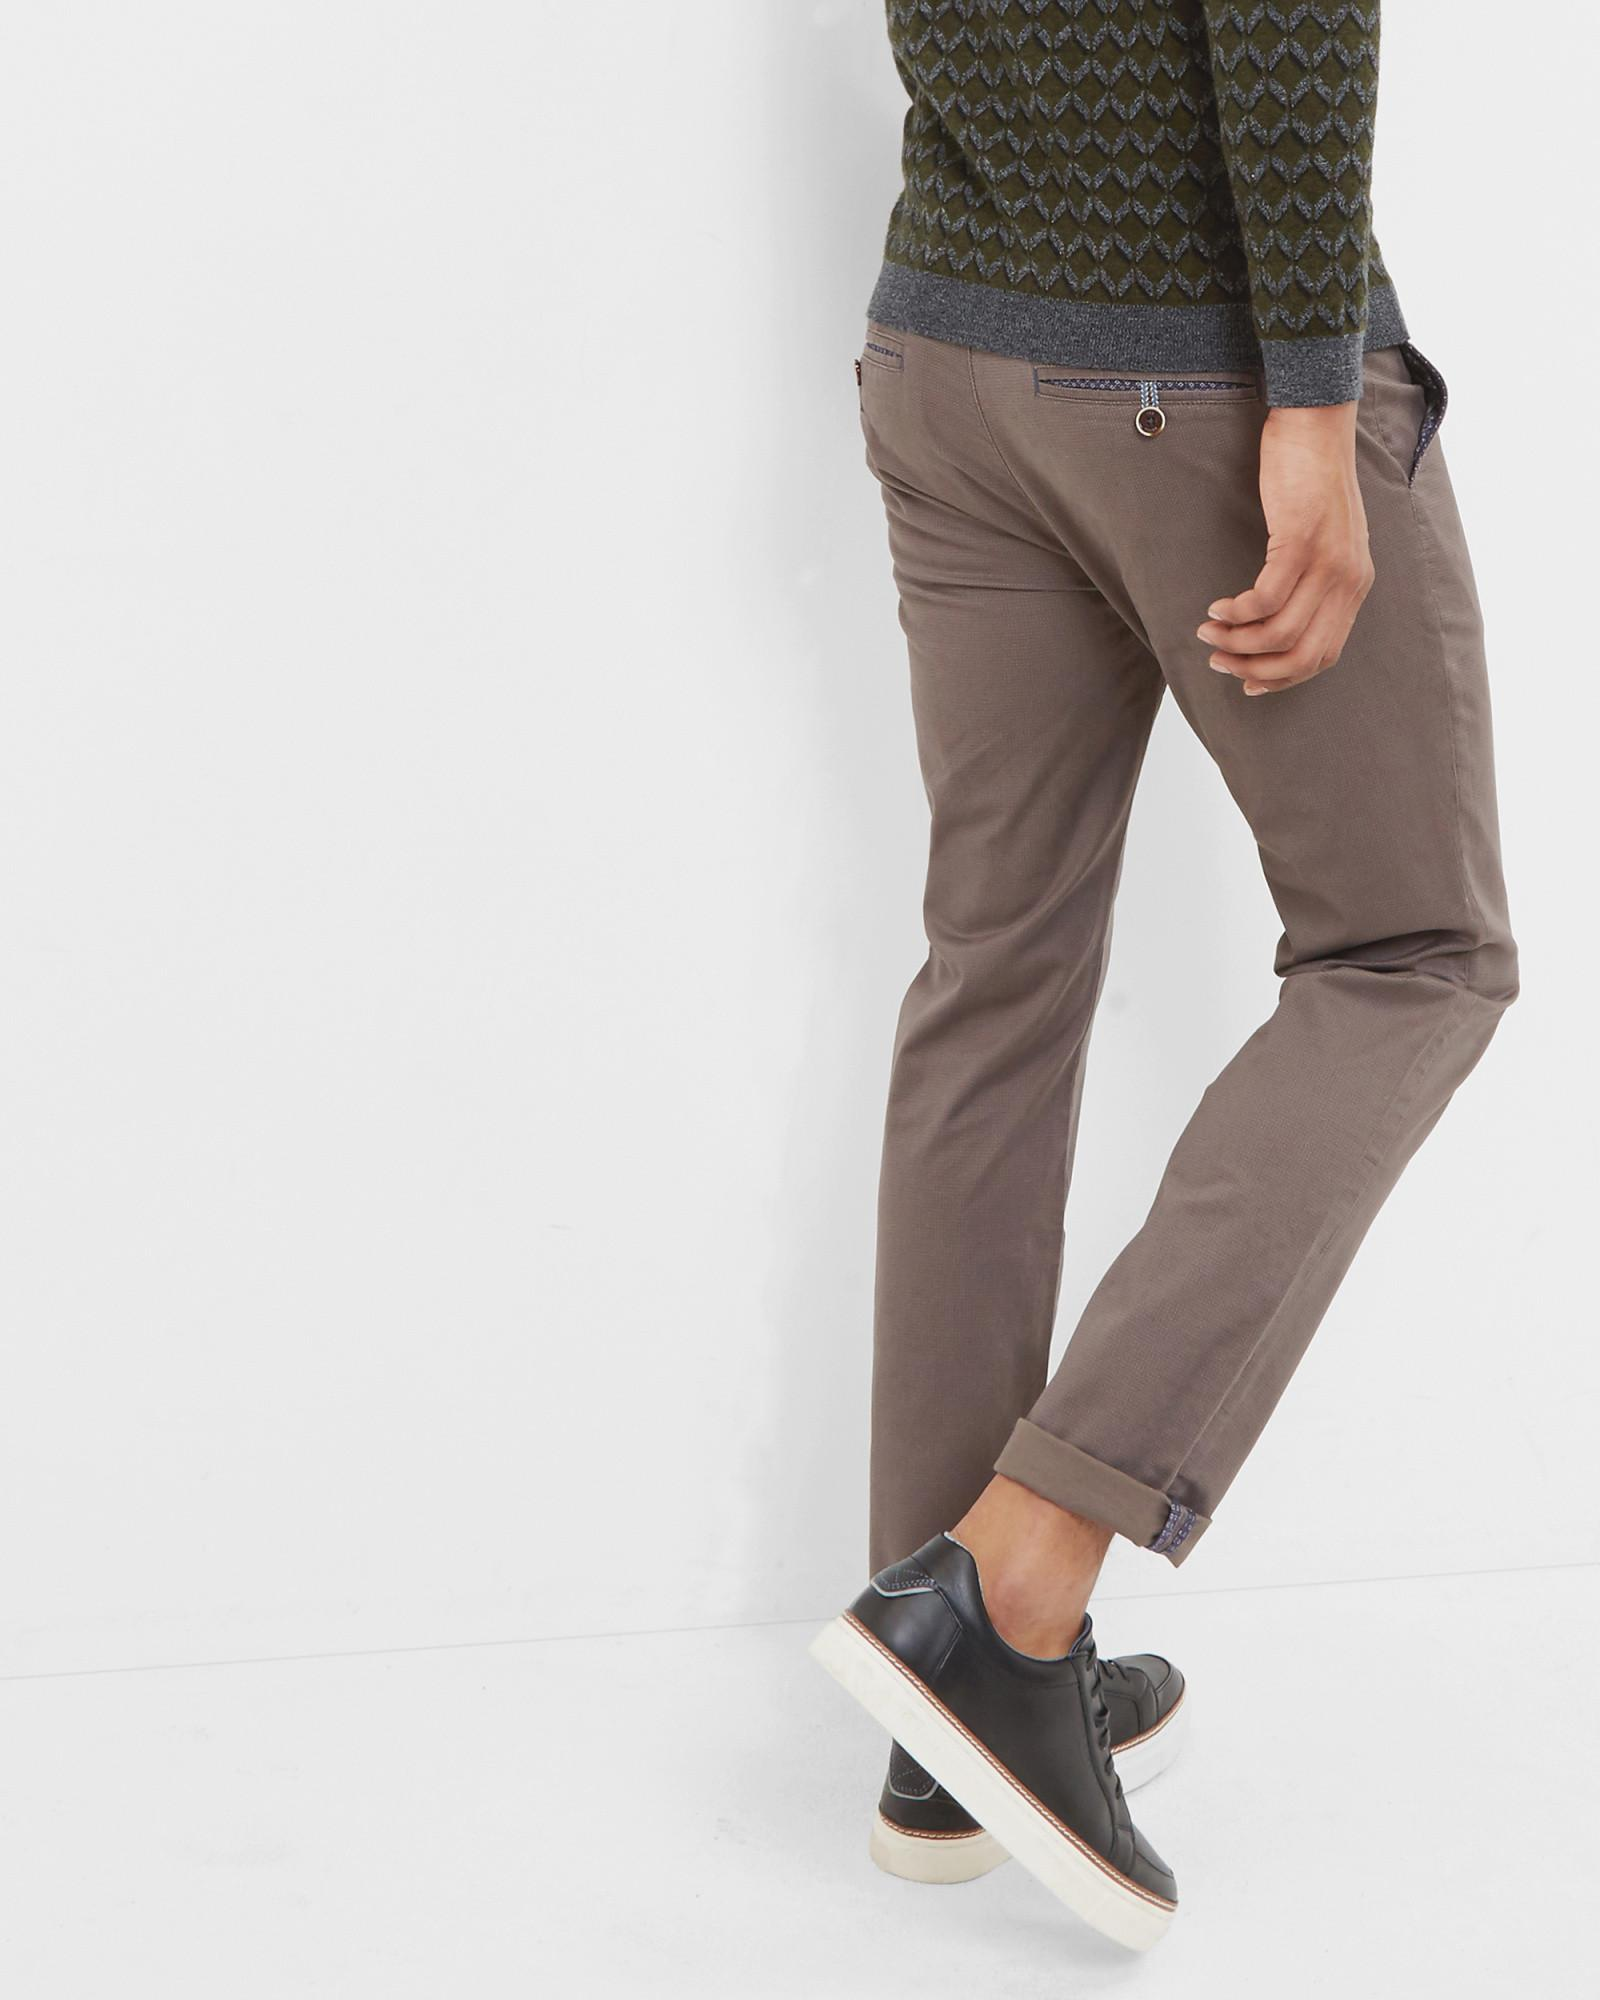 Ted Baker Cotton Micro Print Trousers in Grey (Grey) for Men